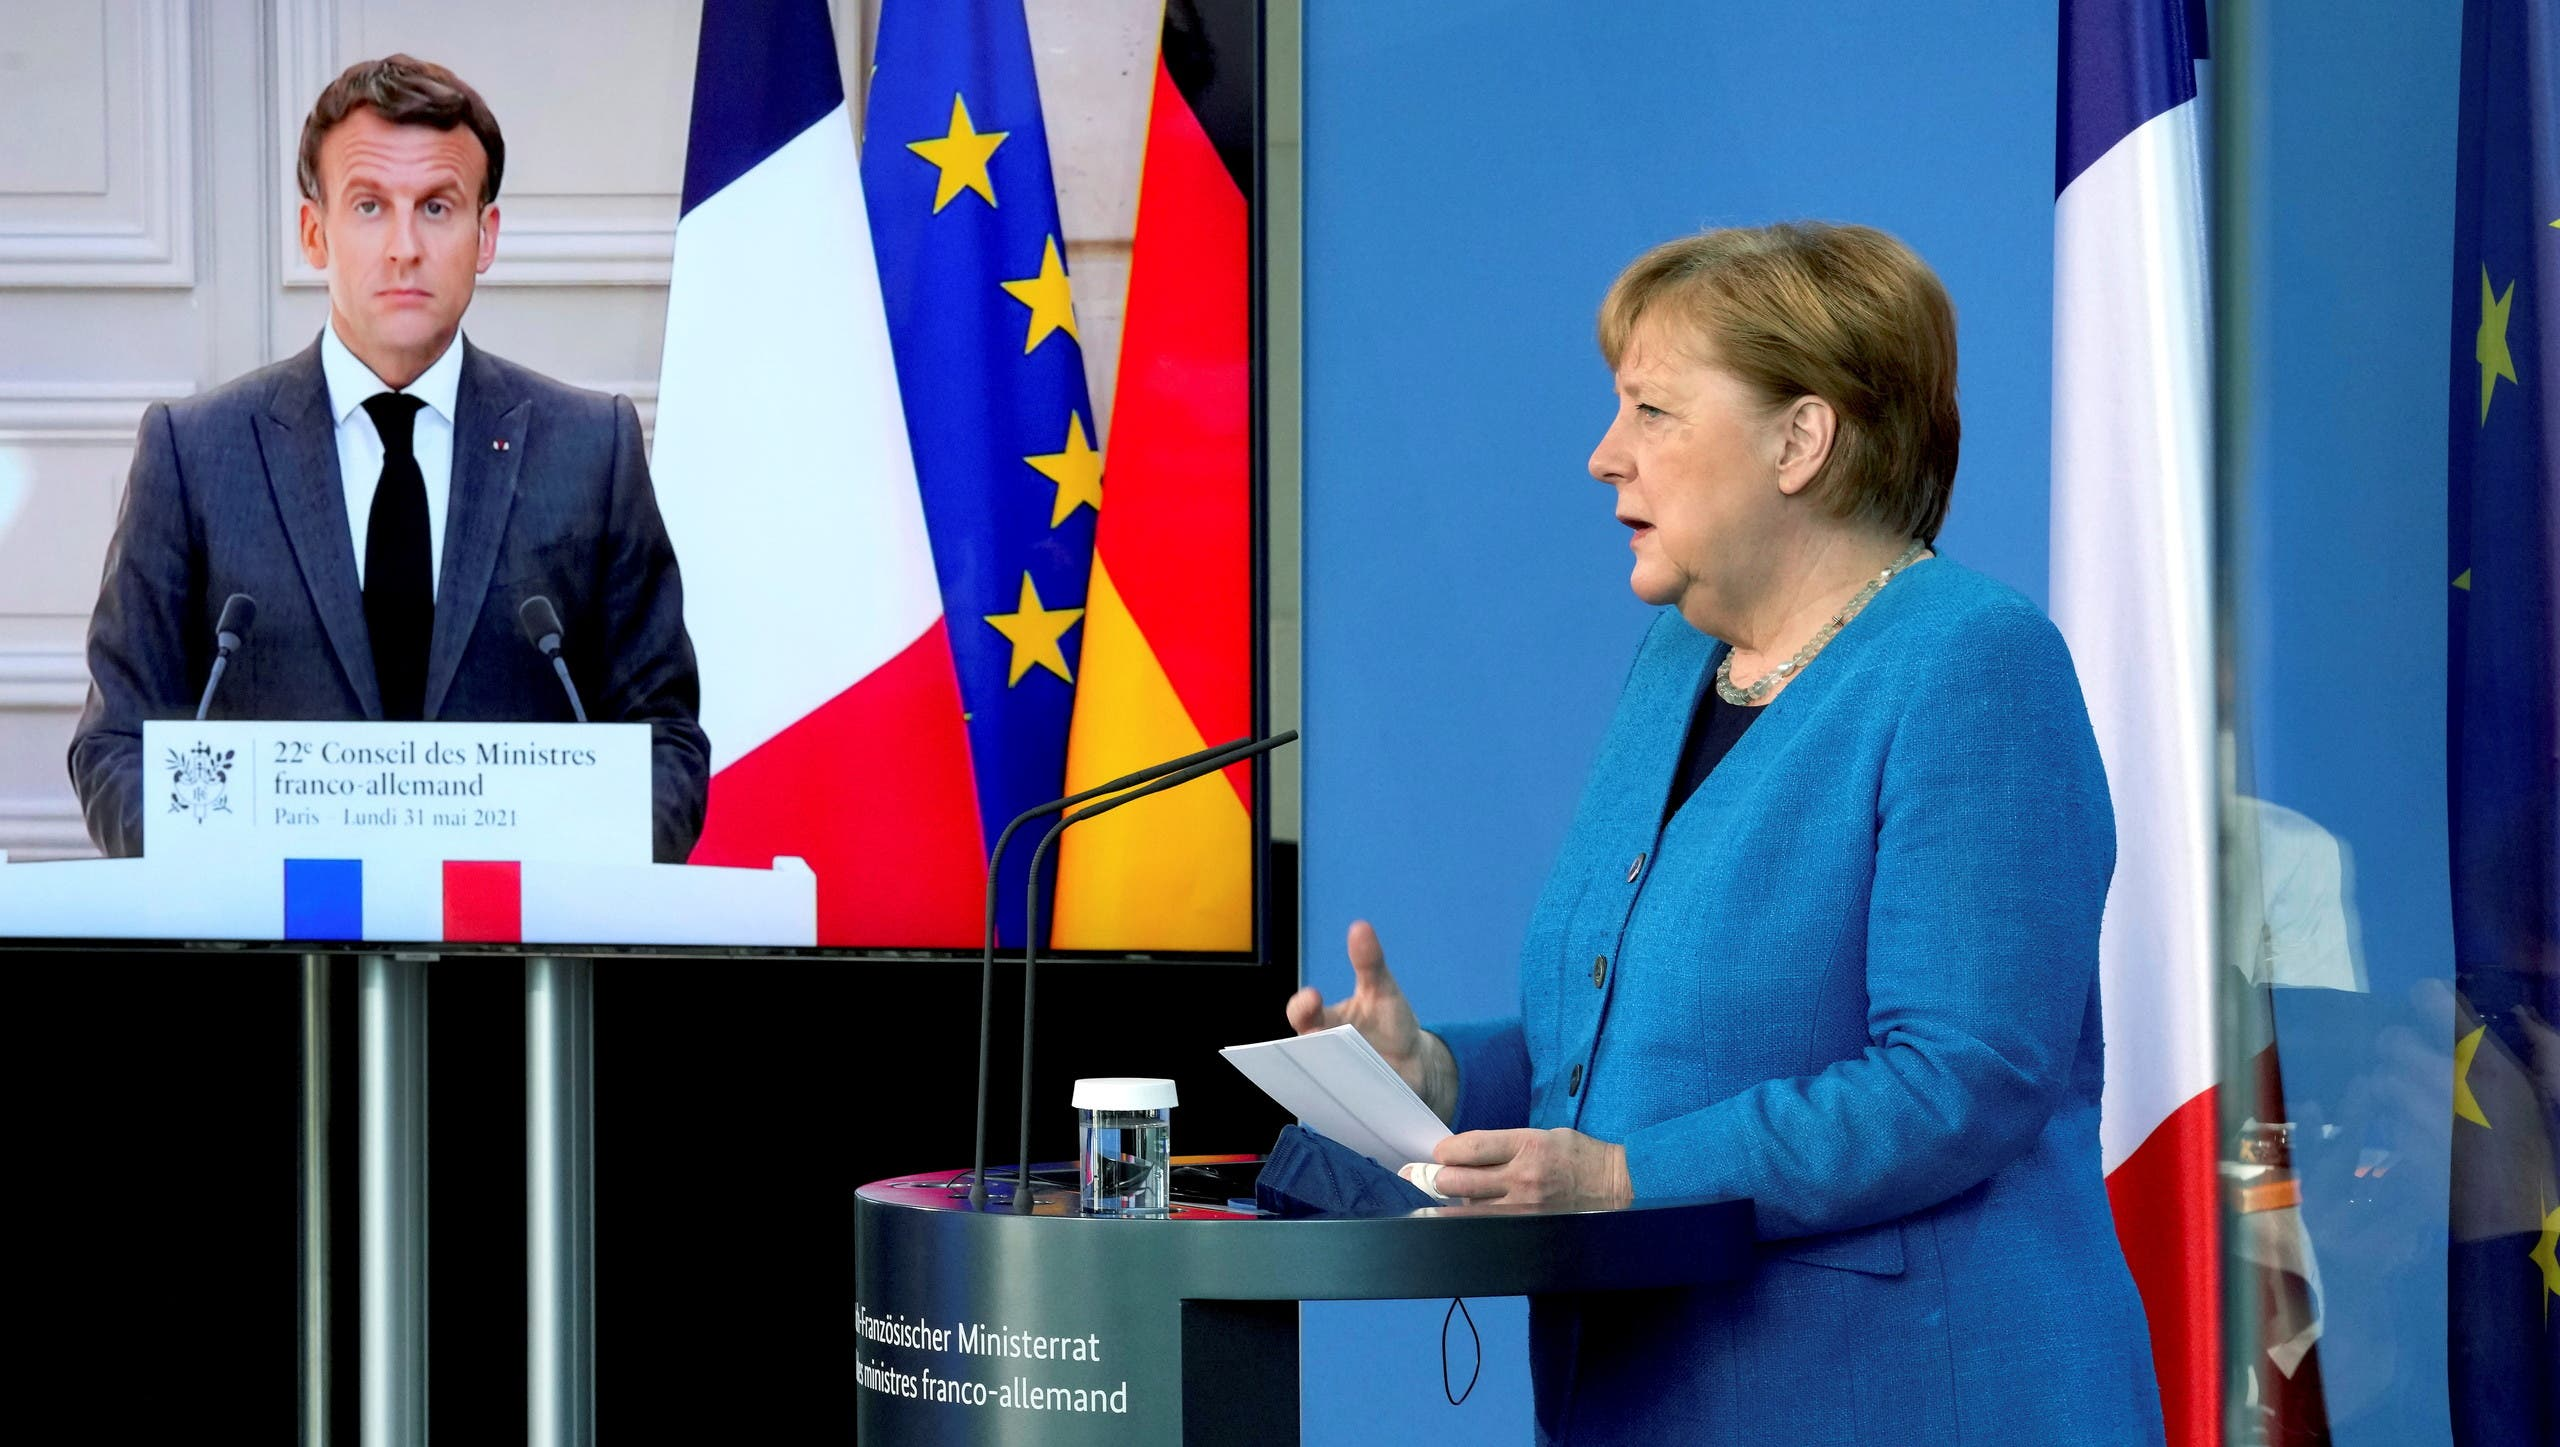 French President Emmanuel Macron is seen on a video screen during a joint press conference with German Chancellor Angela Merkel, as part of a virtual Plenary Session of the Franco-German Council of Ministers in Berlin, Germany, May 31, 2021. (File photo: Reuters)